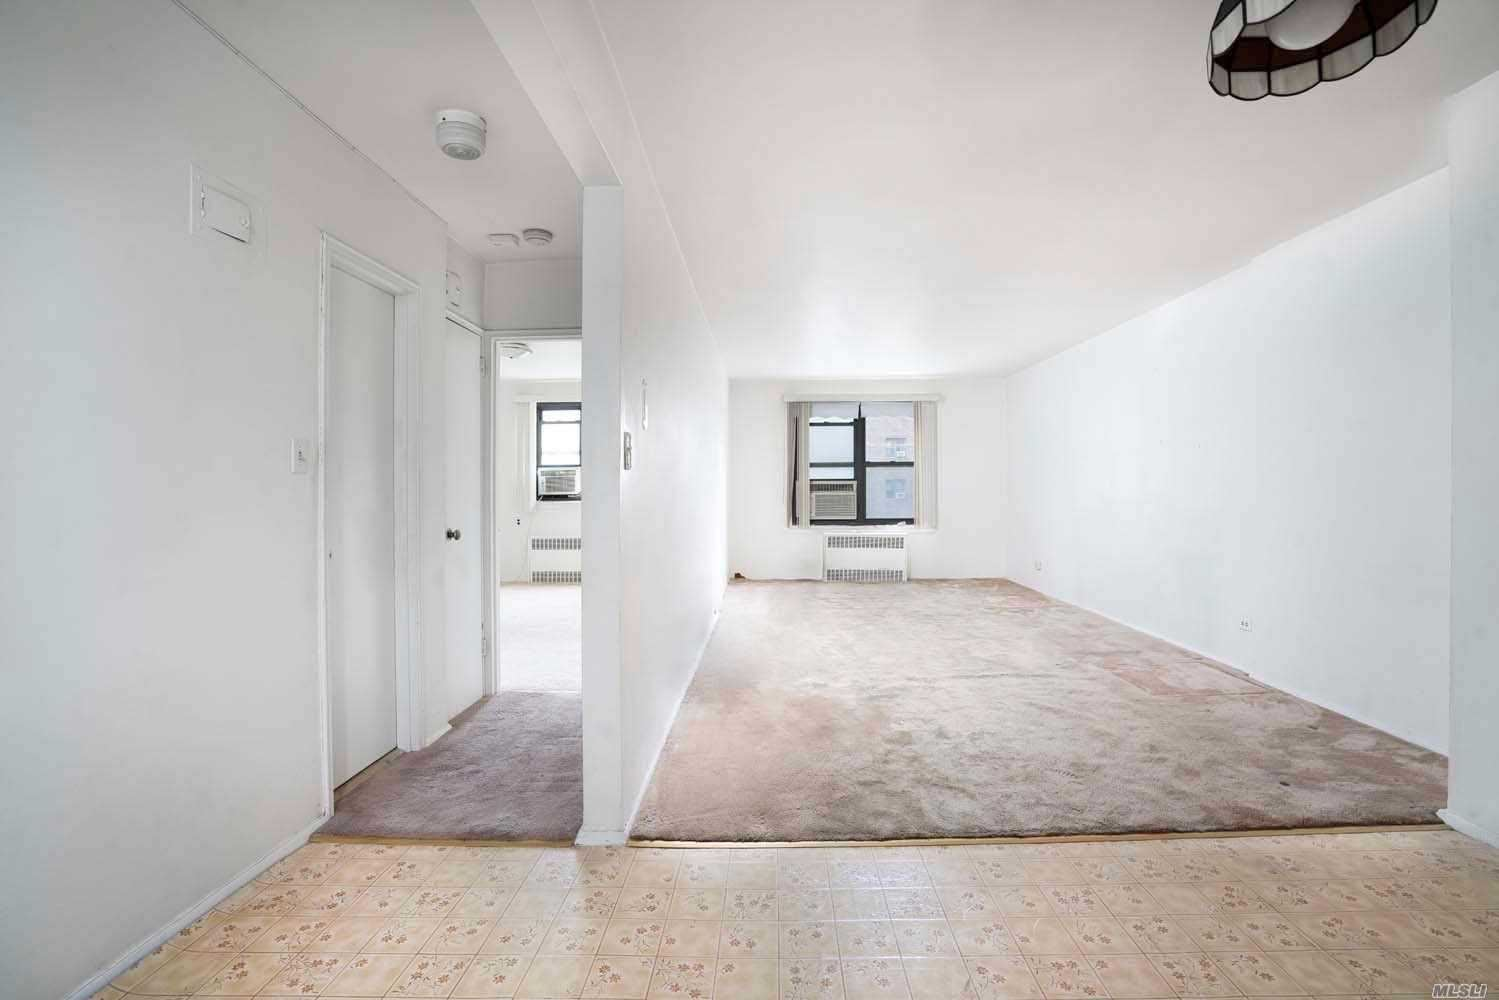 87-40 Francis Lewis Boulevard #B42, Queens Village, NY 11427 - MLS#: 3189863